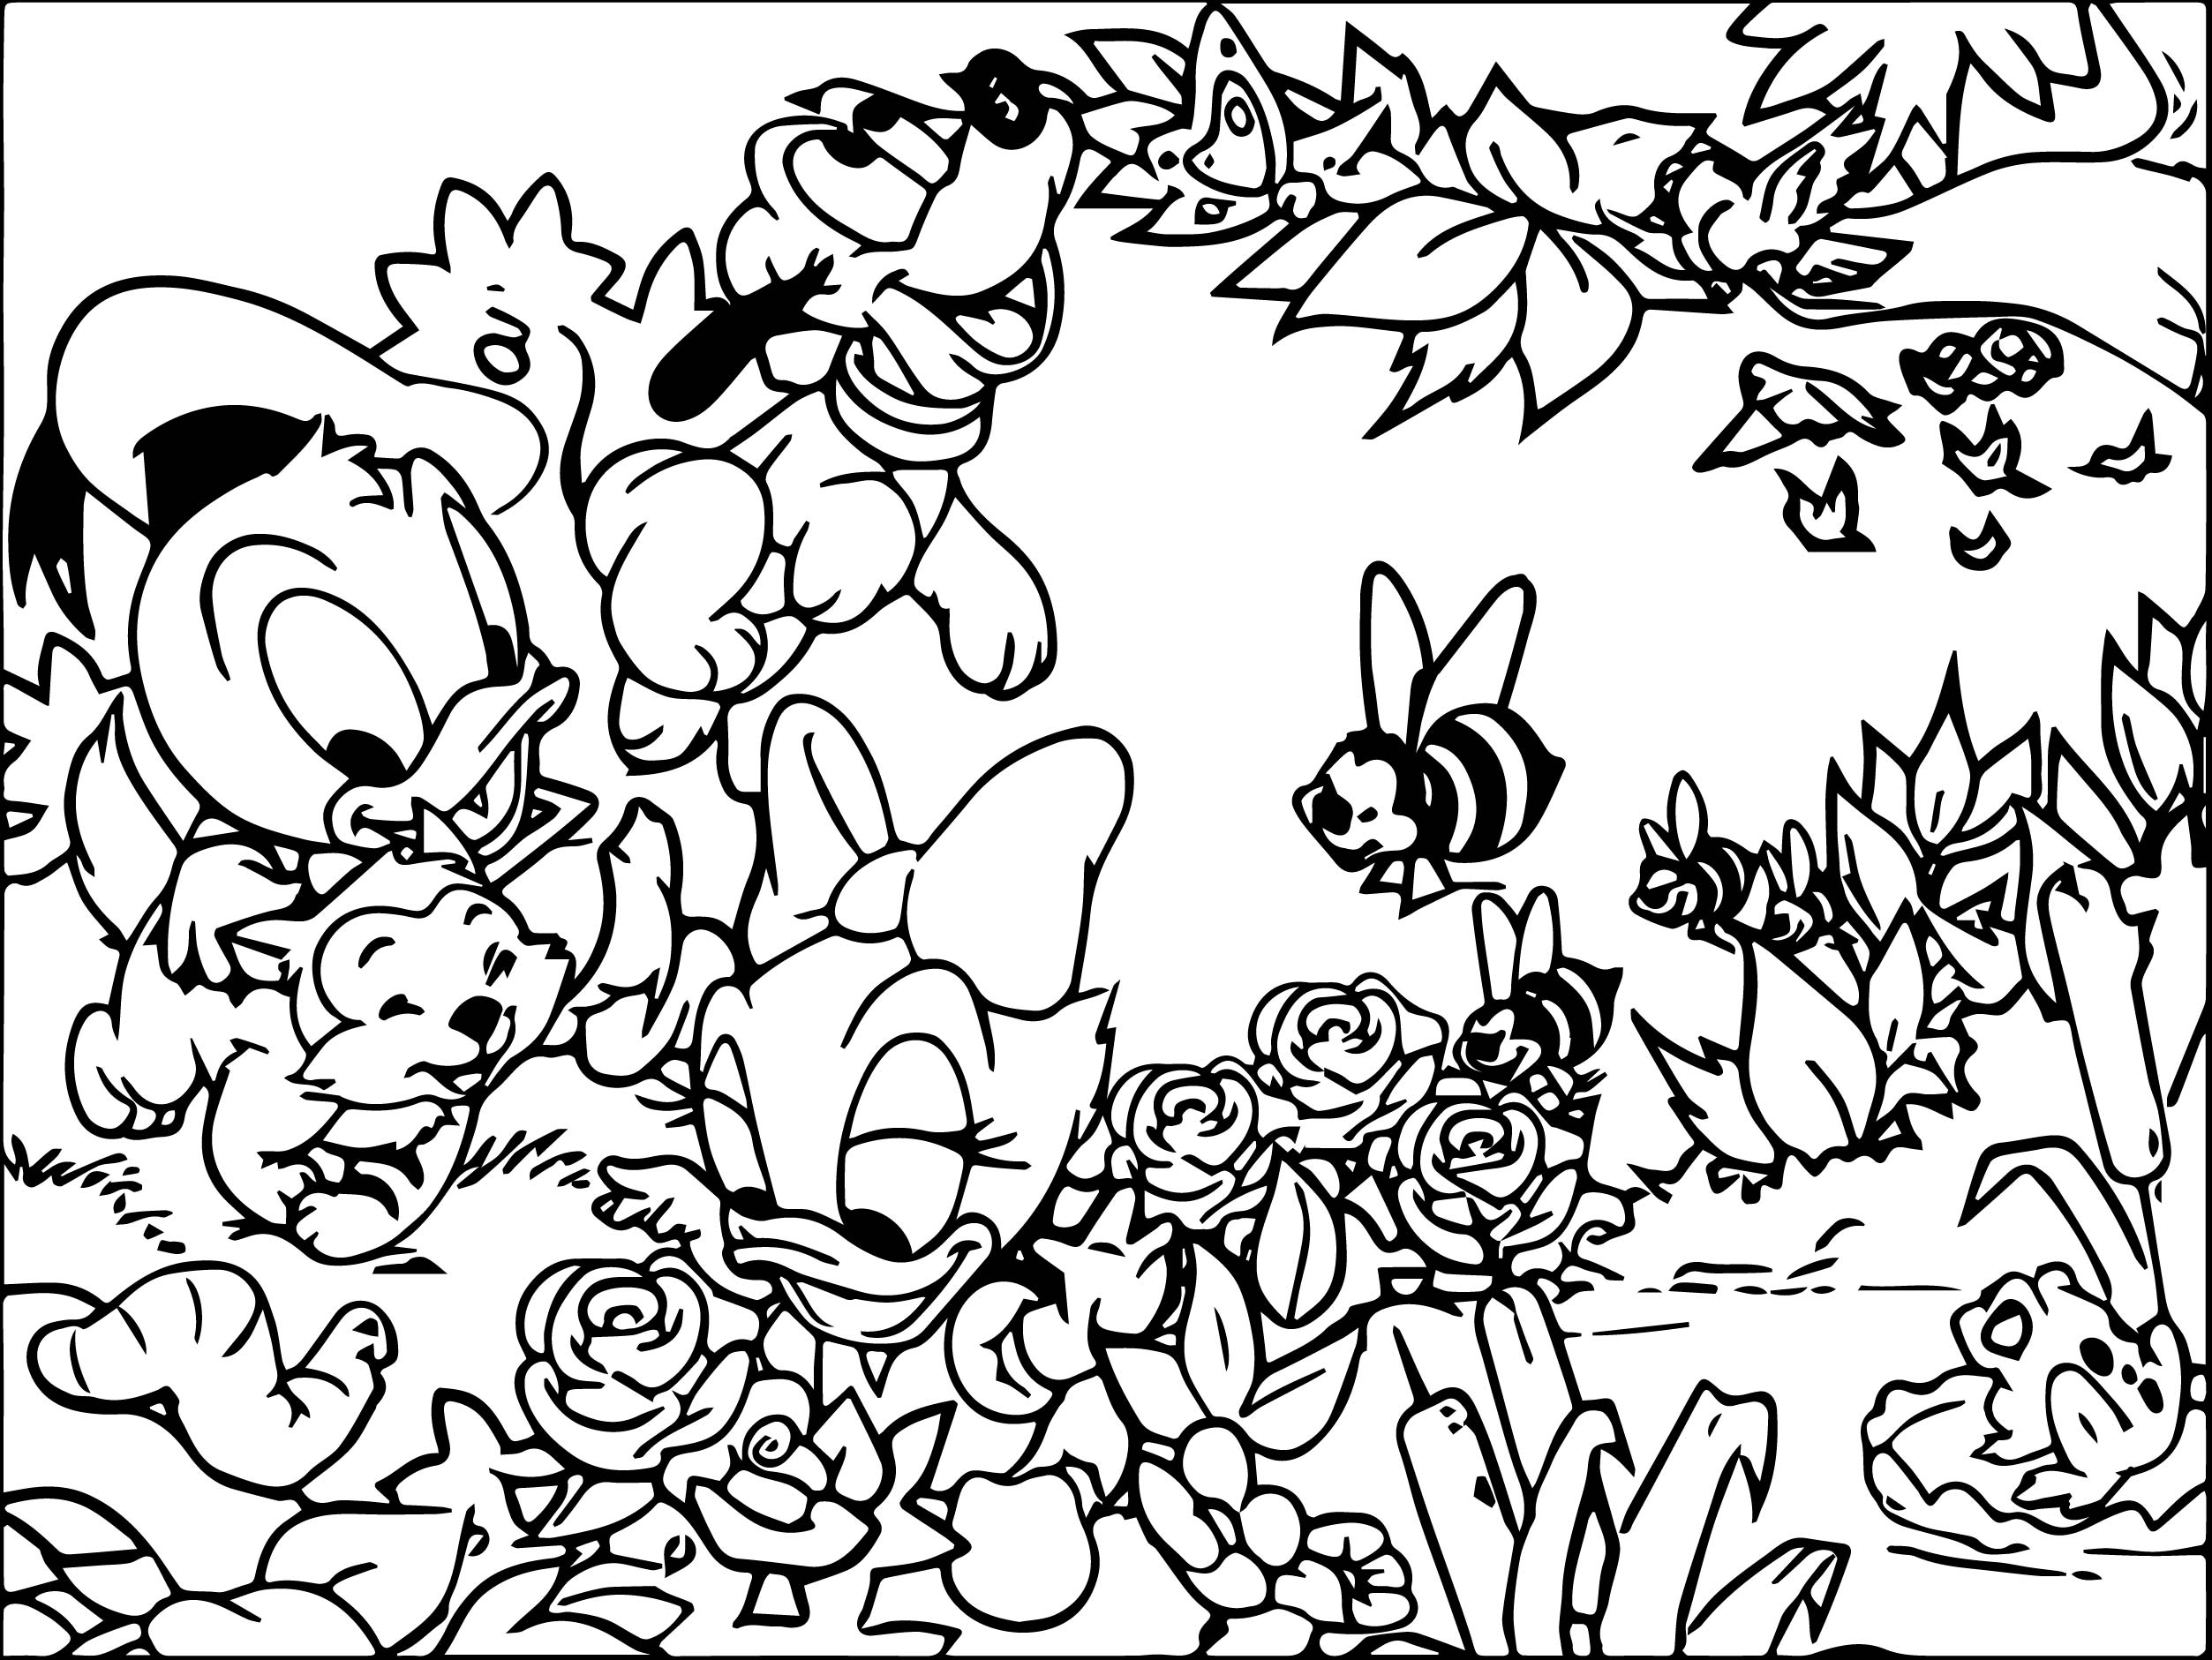 baby donald and baby daisy wallpaper donald duck coloring page